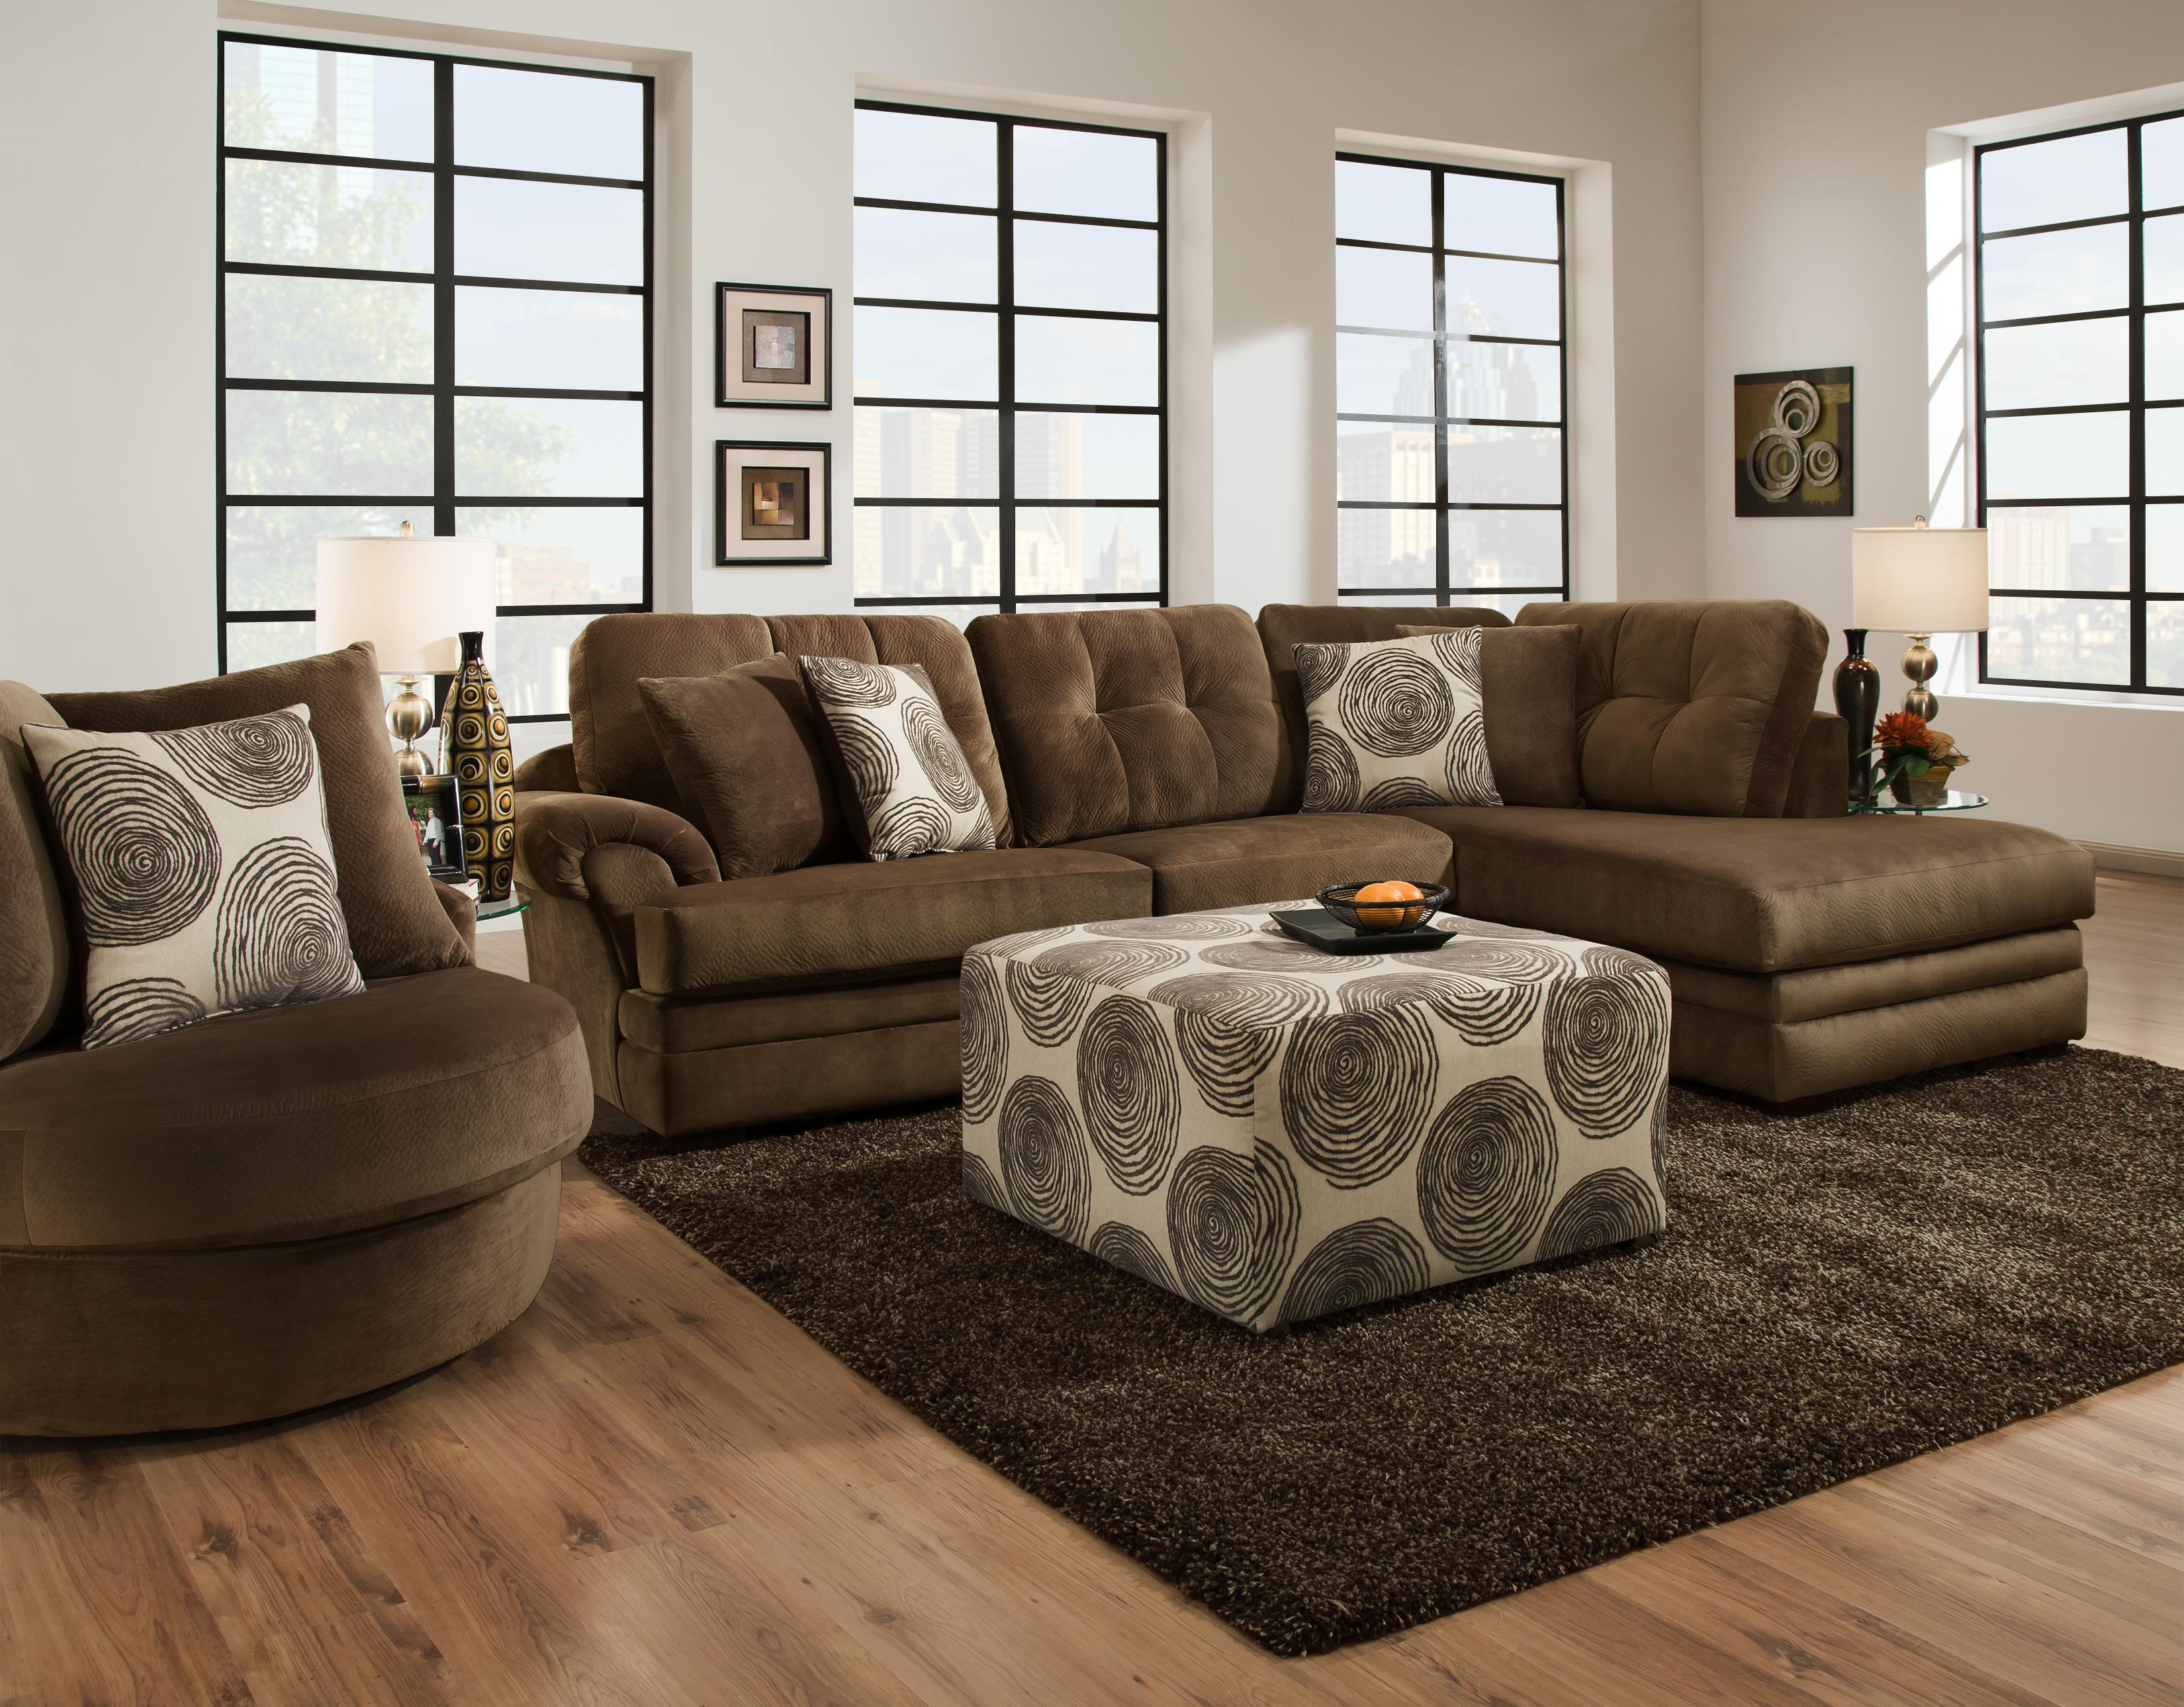 16C0 Stationary Living Room Group by Corinthian at Story & Lee Furniture